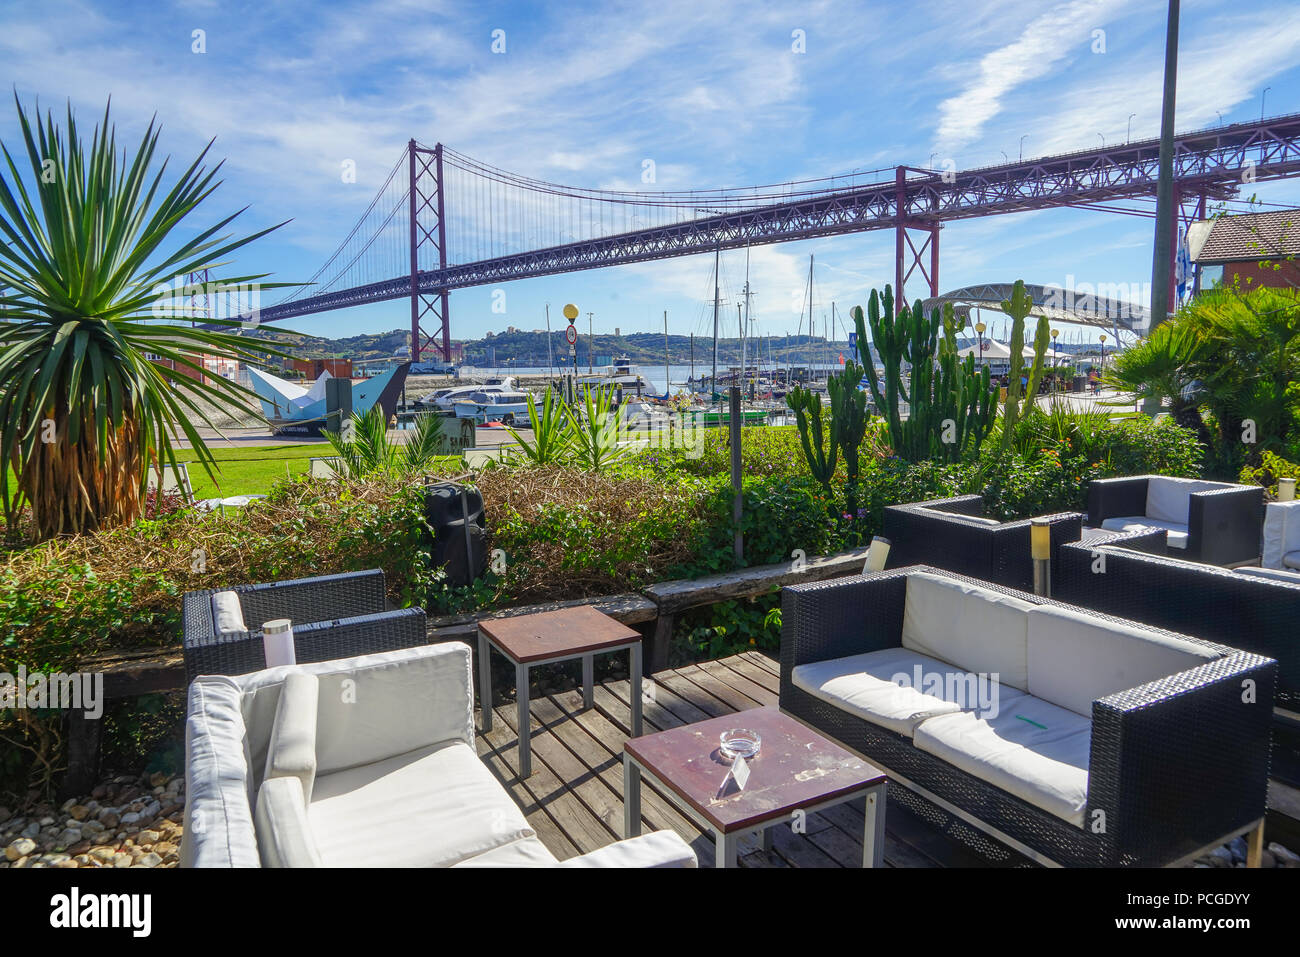 Lisbon. Harbour cafe close to Ponte 25 do Abril - Stock Image